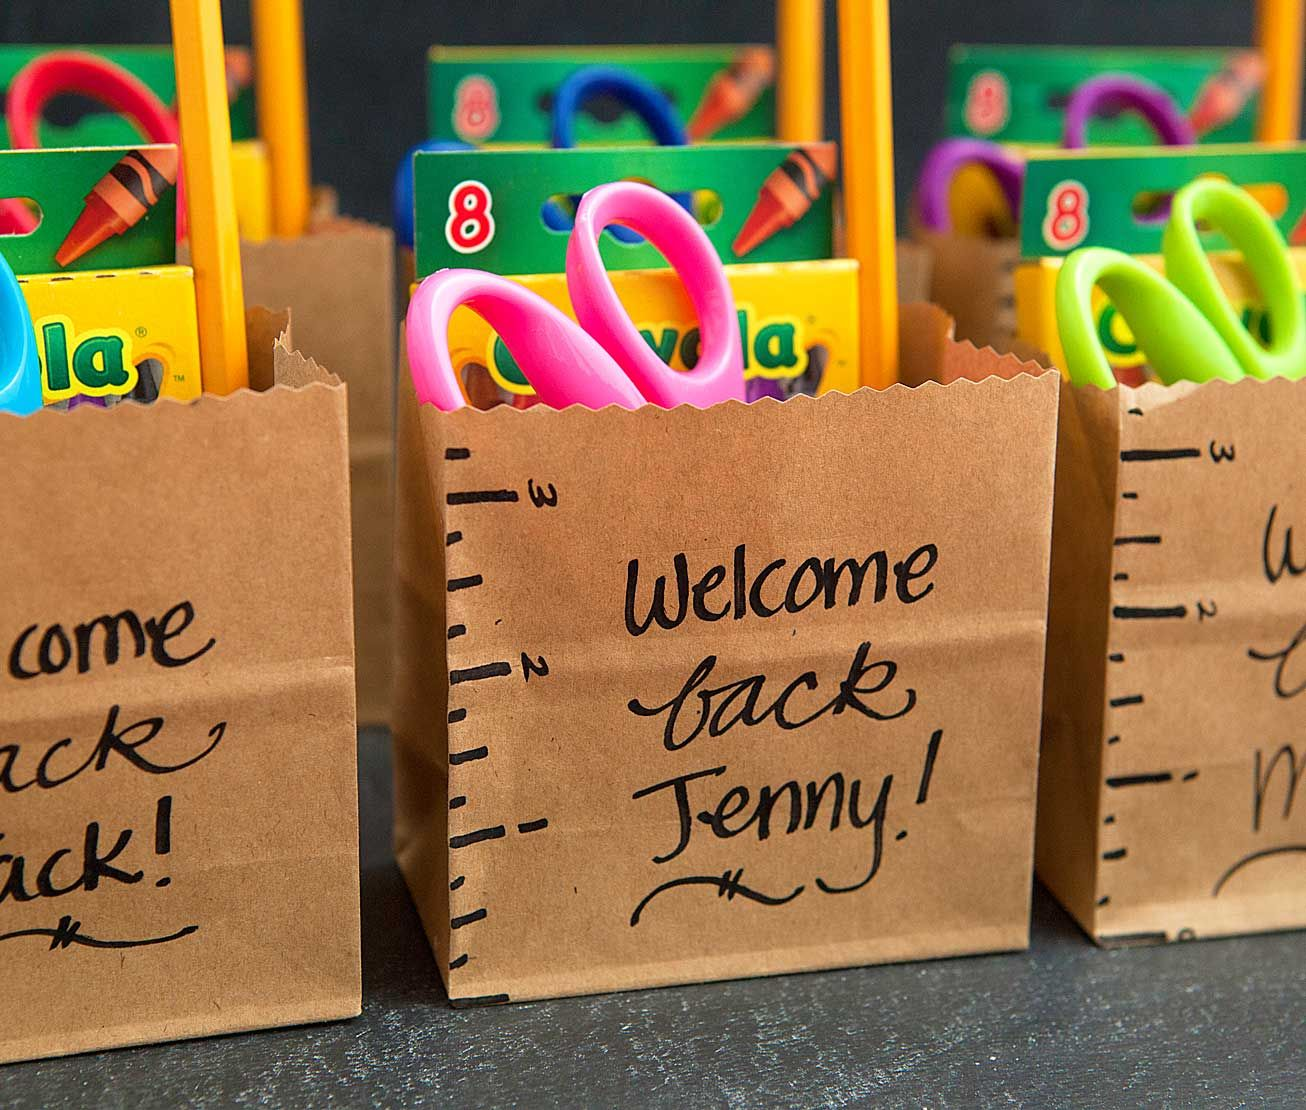 Back To School Survival Kit Ideas For Students With Images